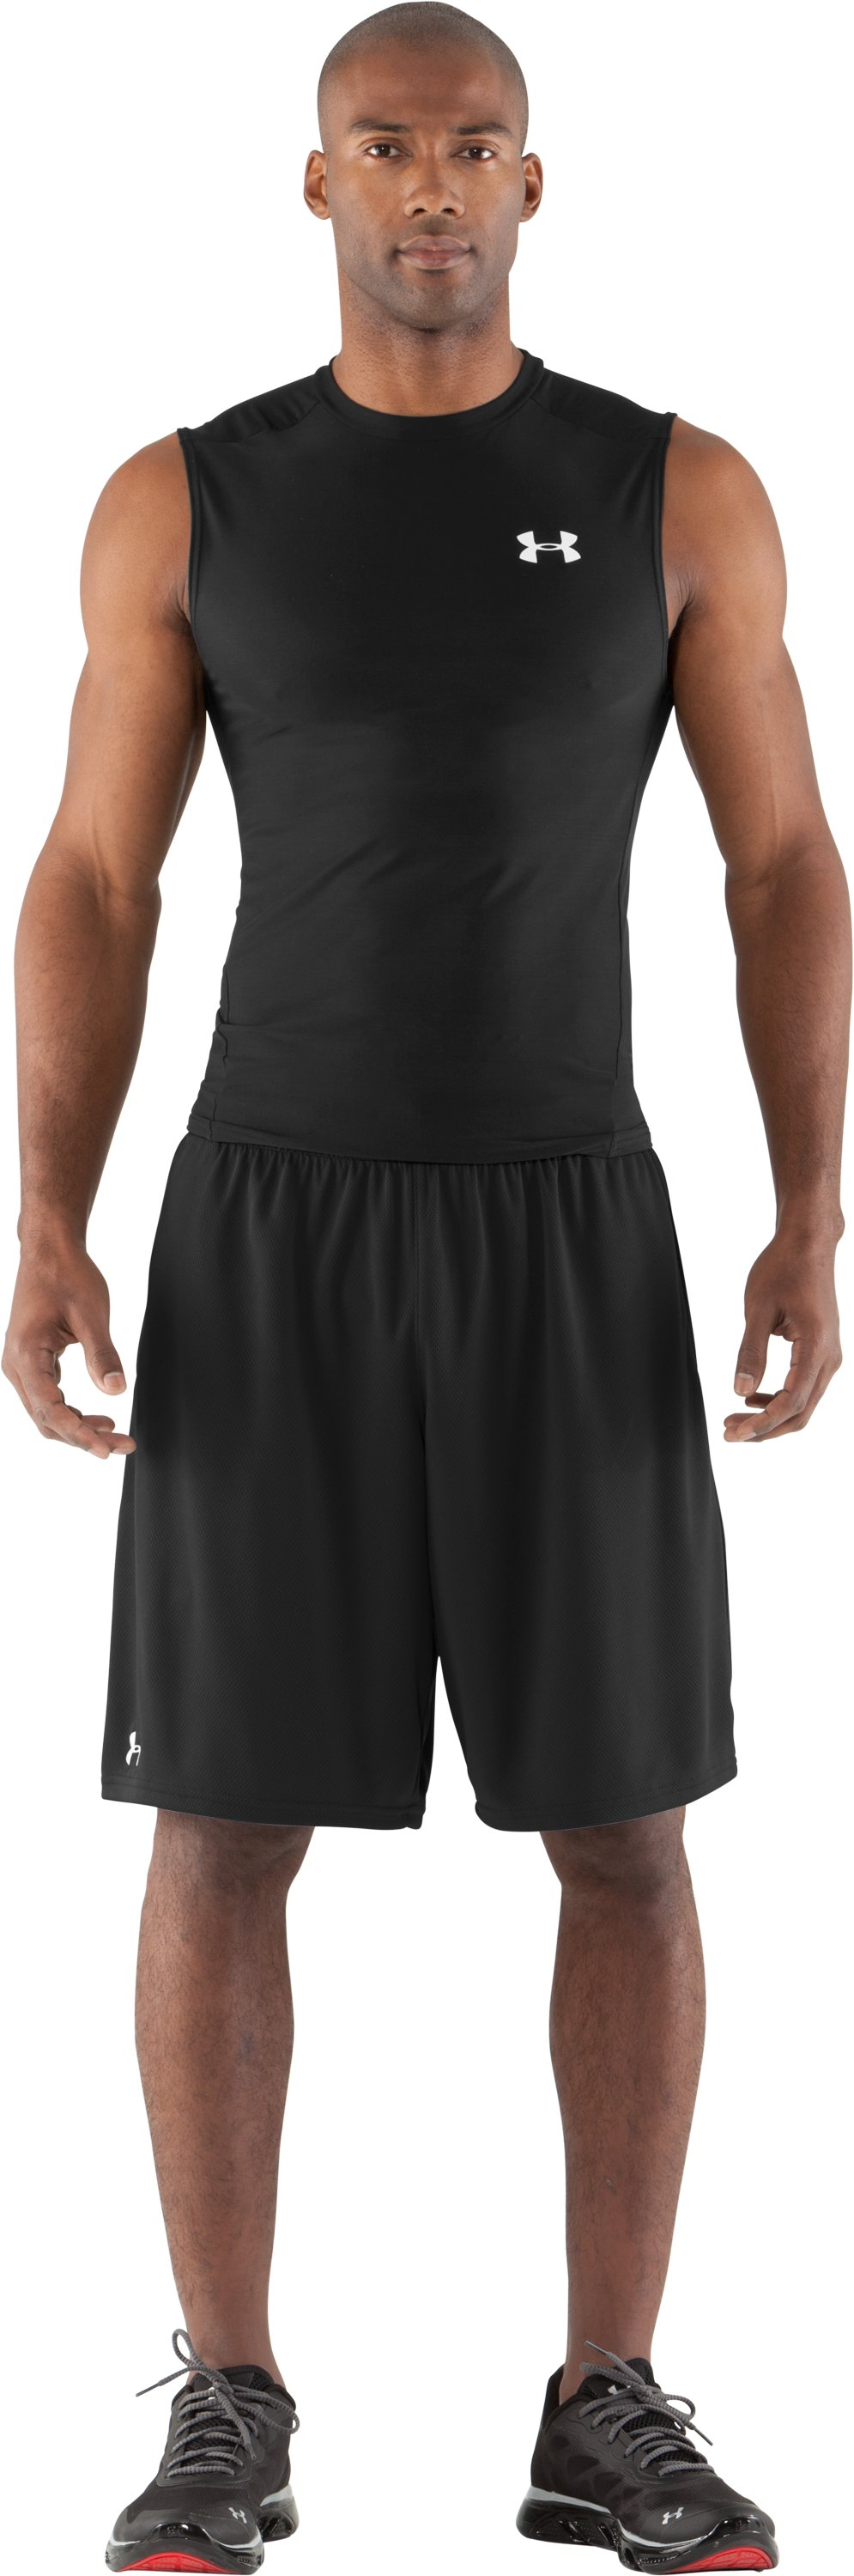 Men's HeatGear® Compression Sleeveless T-Shirt, Black